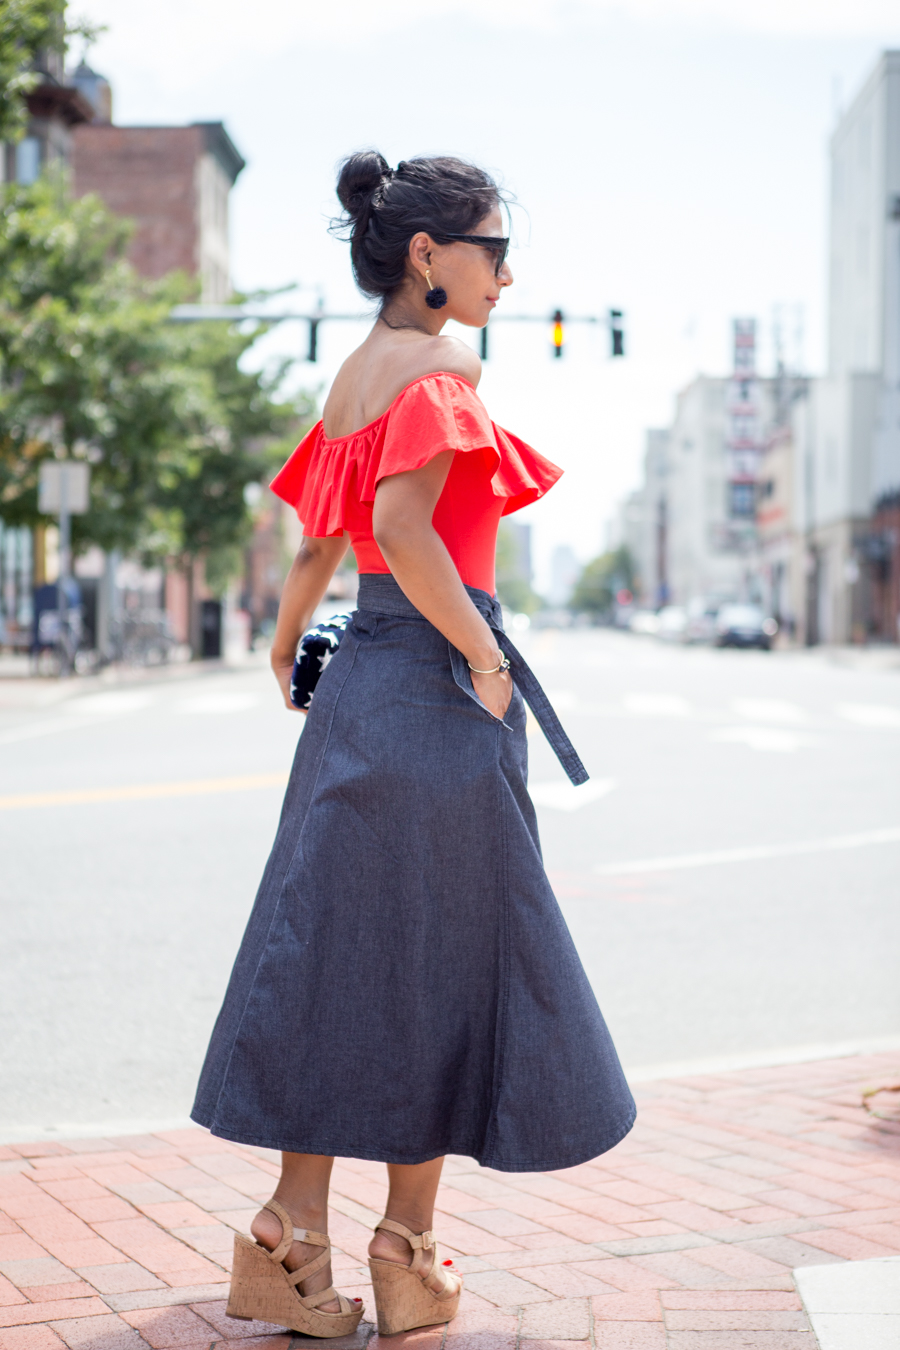 summer sales, independence day, july 4 style, red white and blue, classic denim, ruffle top, body suit, off the shoulder, summer style, wardrobe staples, nordstrom, kayu, gap, shopbop, petite fashion, petite style, boston style, street style, 40 plus style